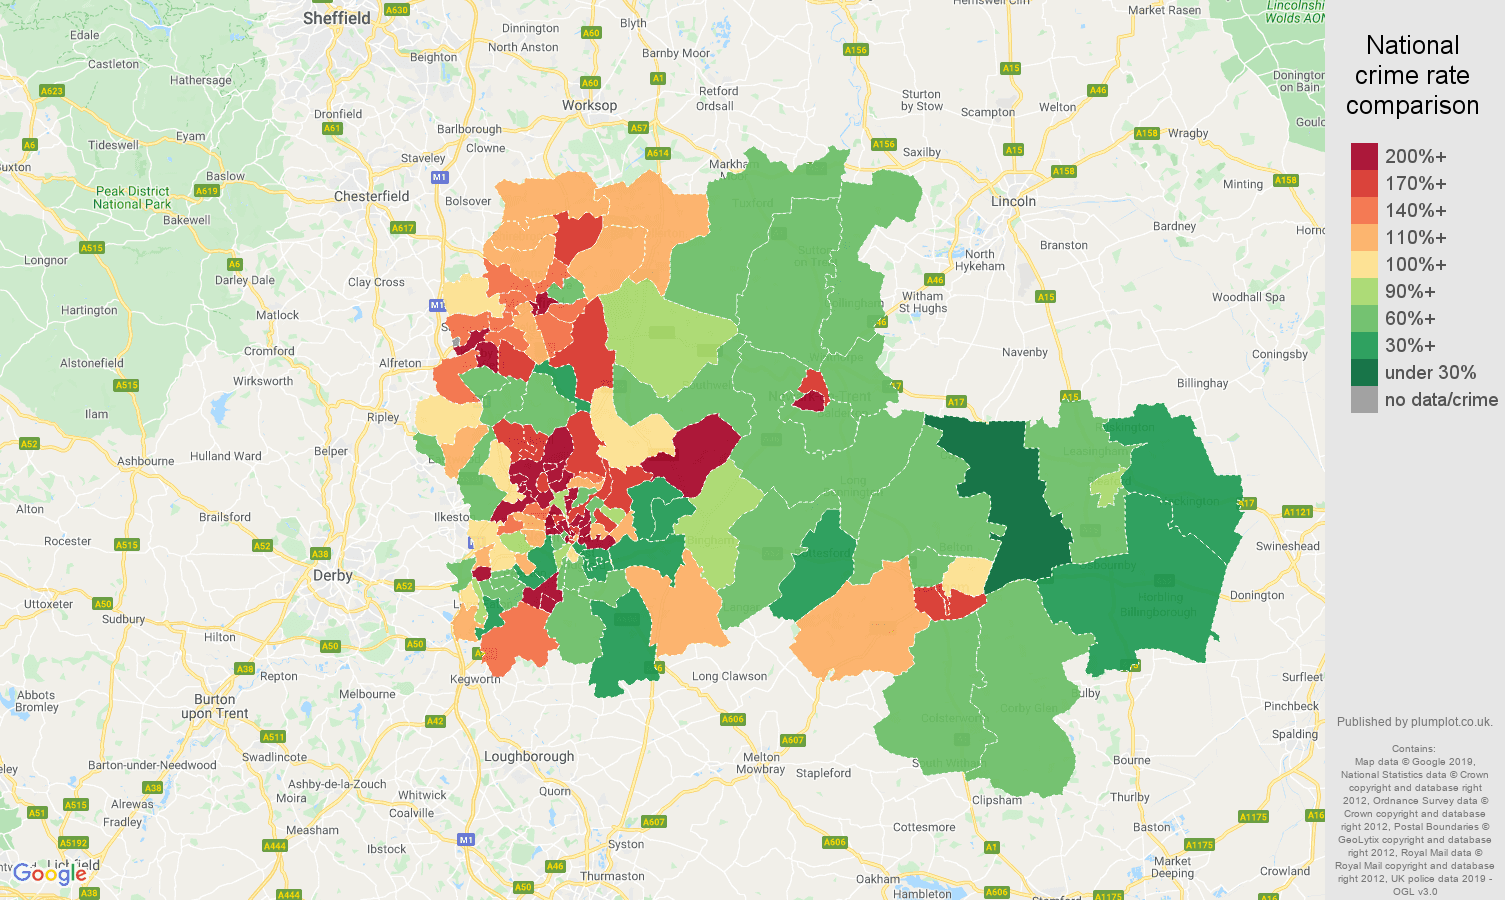 Nottingham other crime rate comparison map